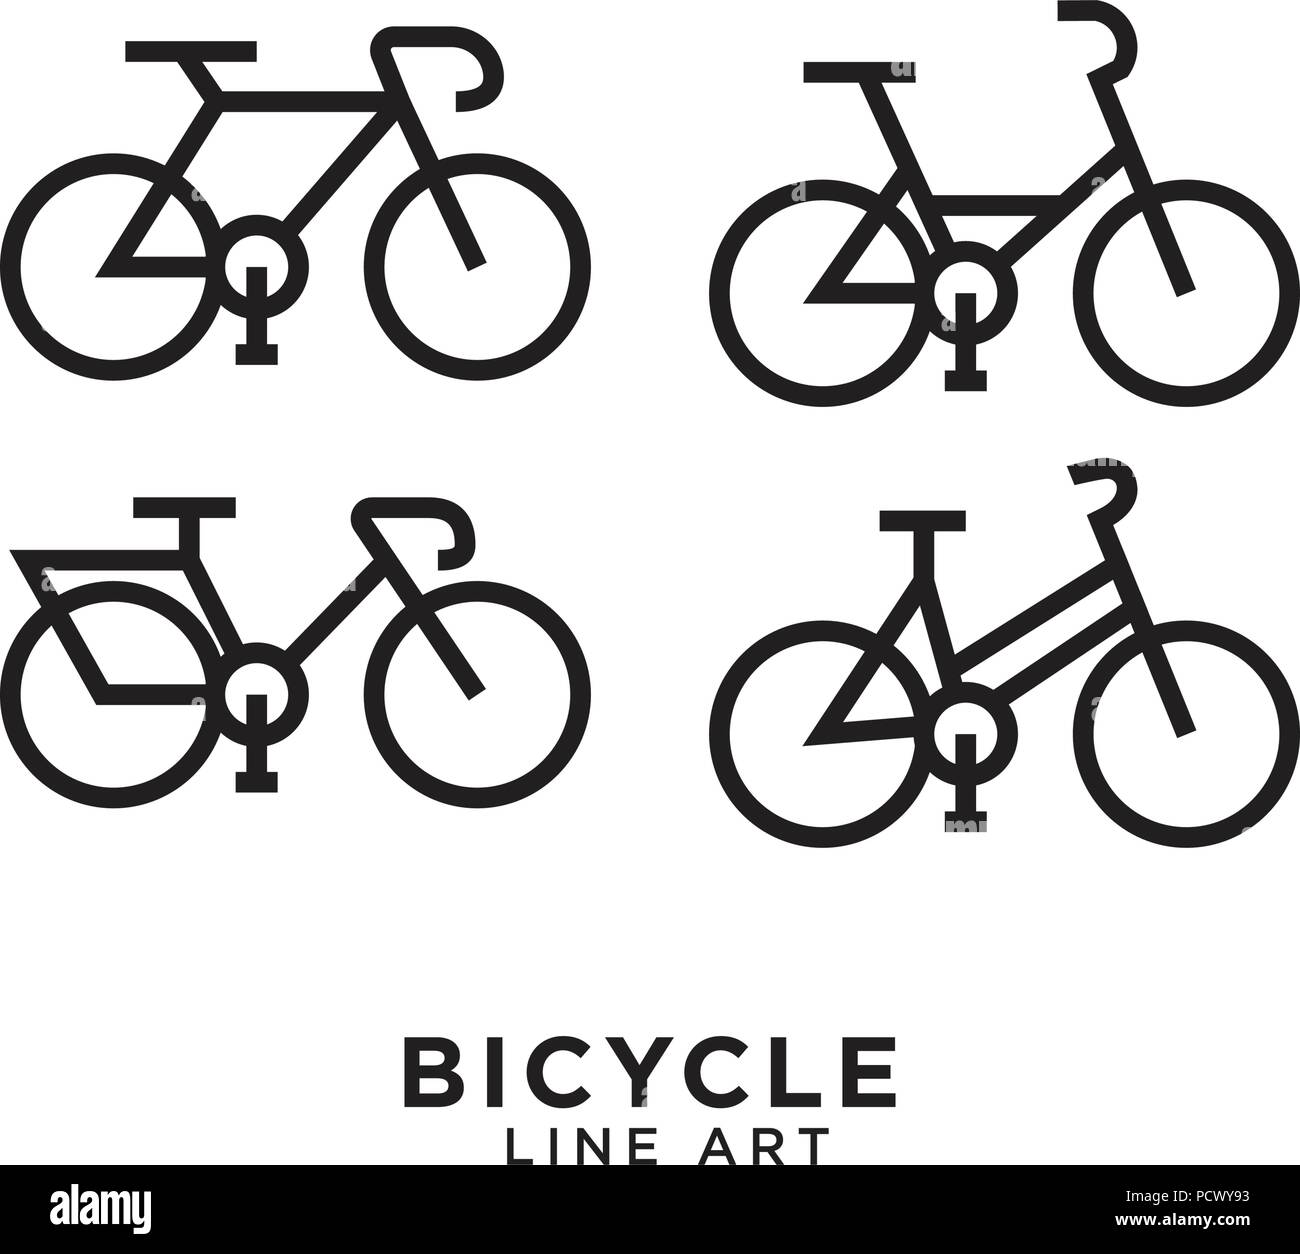 Bicycle line art logo design template royalty free vector.